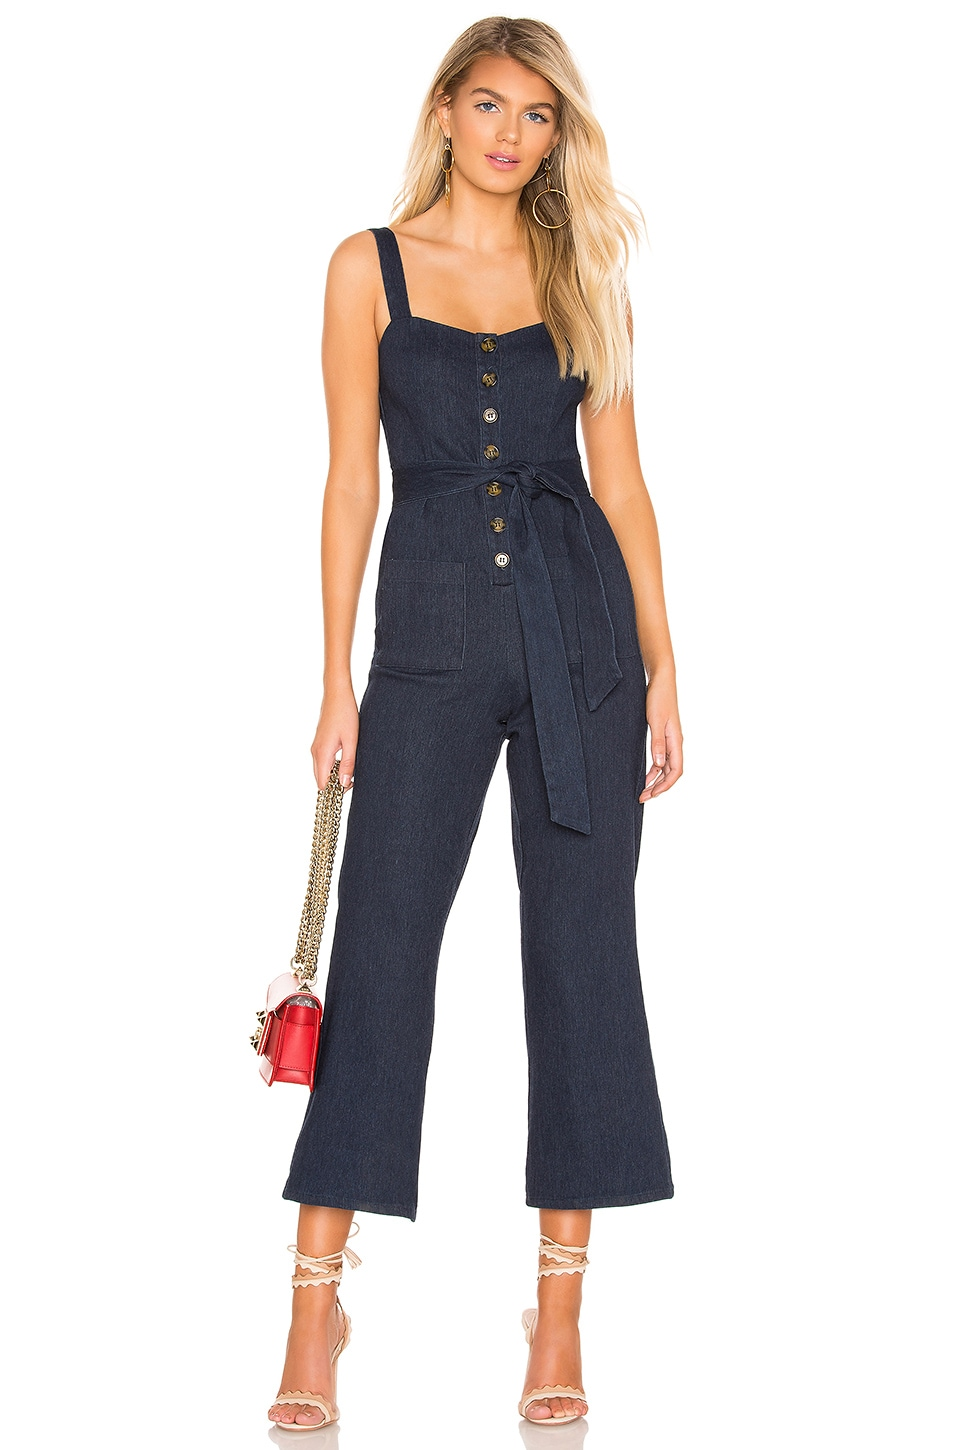 Privacy Please Clementine Jumpsuit in Dark Indigo